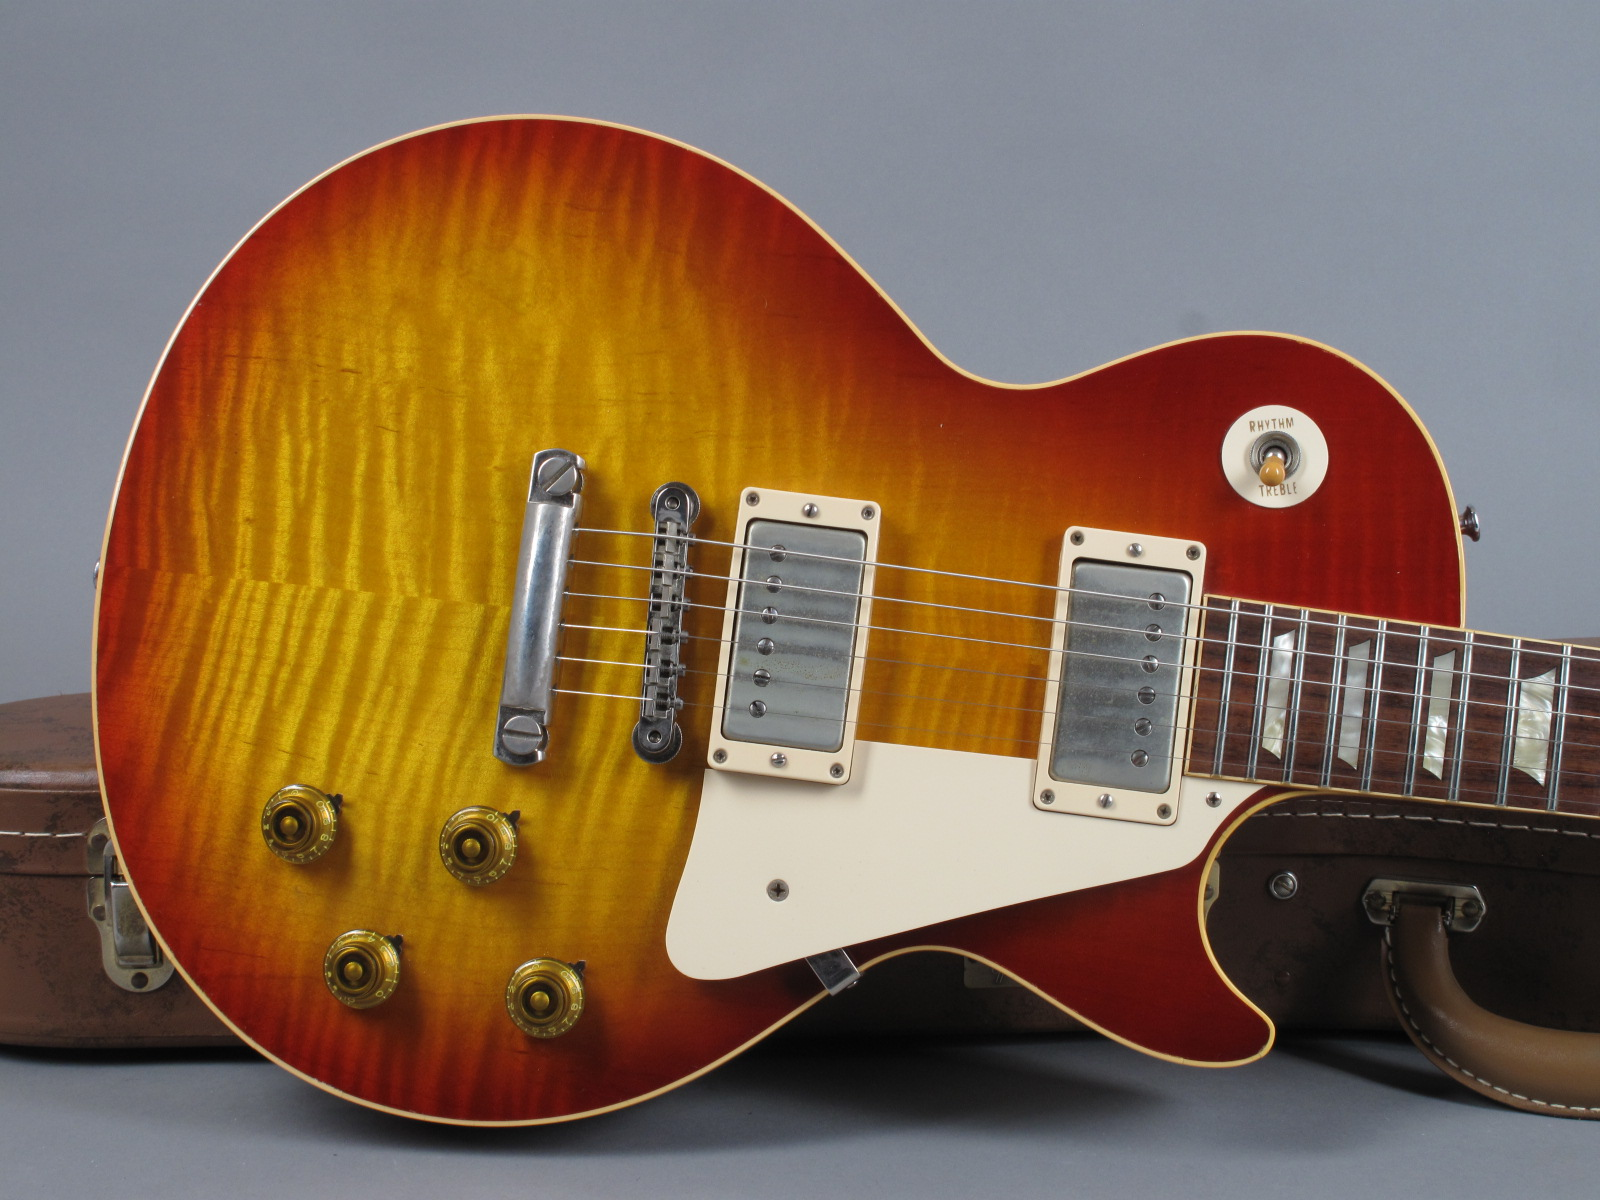 https://guitarpoint.de/app/uploads/products/2007-gibson-les-paul-1959-reissue-vos-washed-cherry/2007-Gibson-Les-Paul-1959-Reissue-VOS-97579-9.jpg